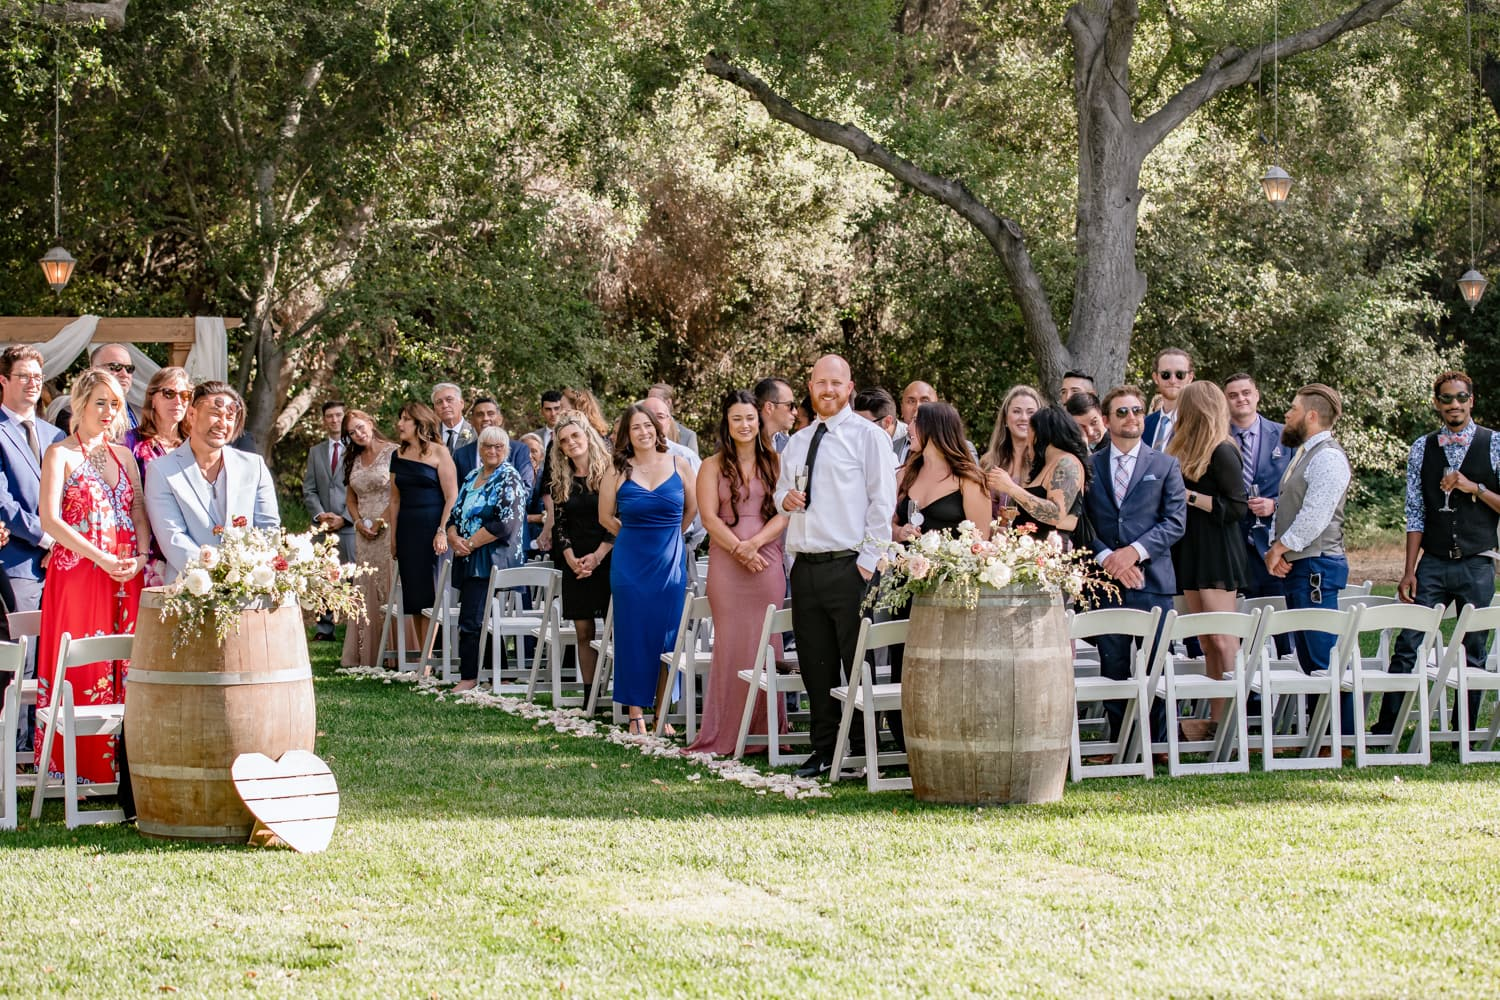 Wedding guests at The Stone House ceremony in Temecula, CA